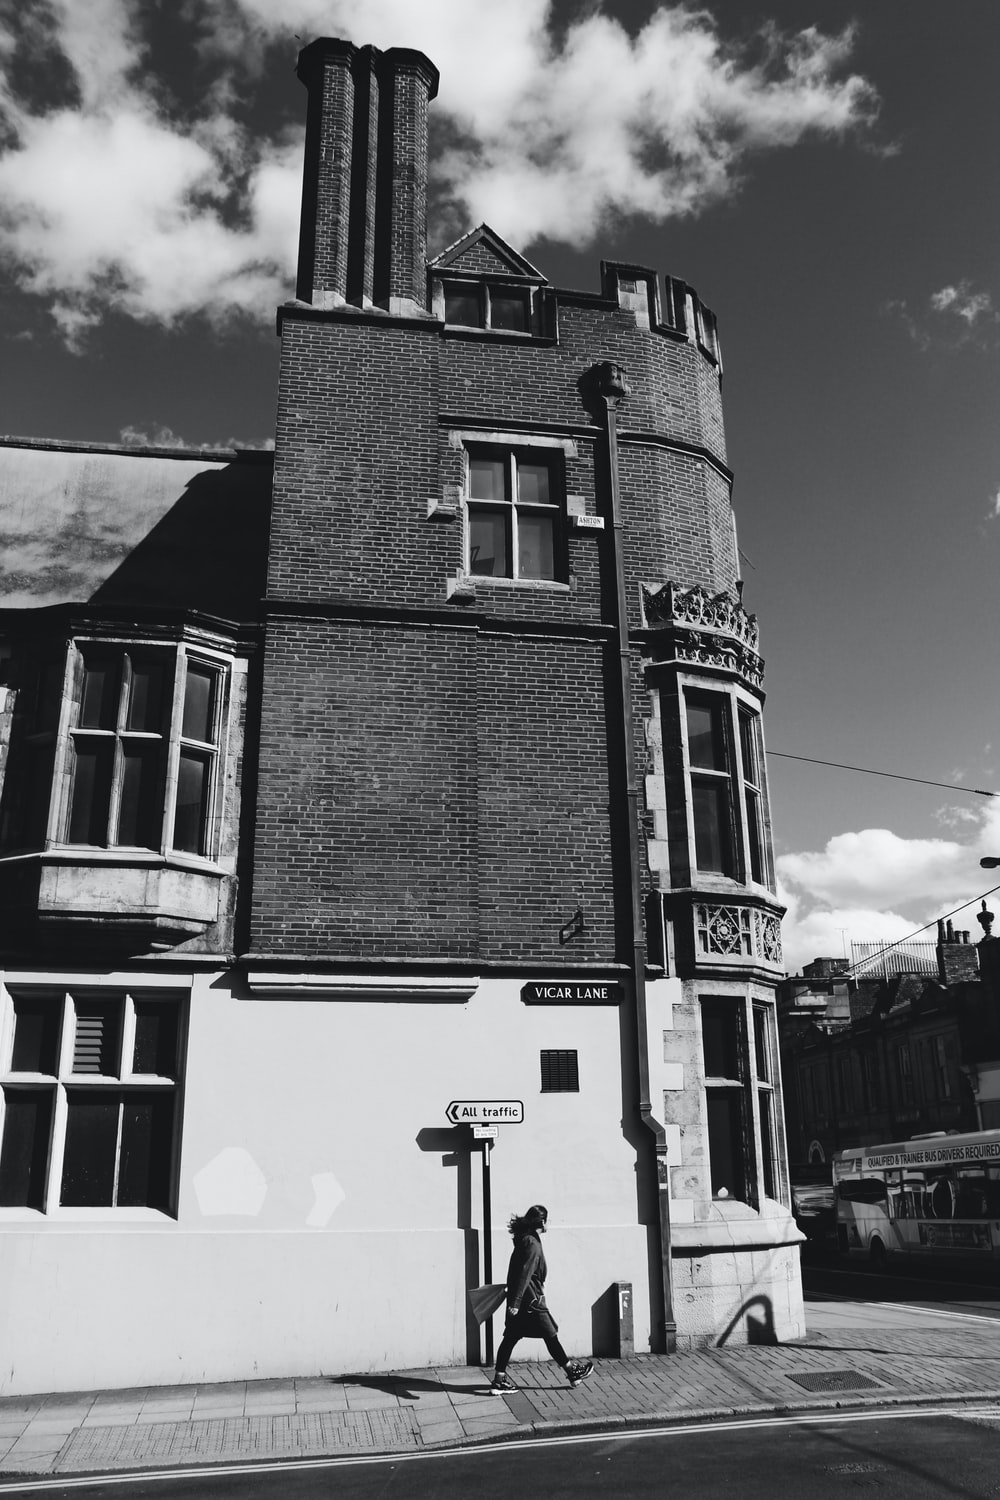 grayscale photography of person walking on street beside building